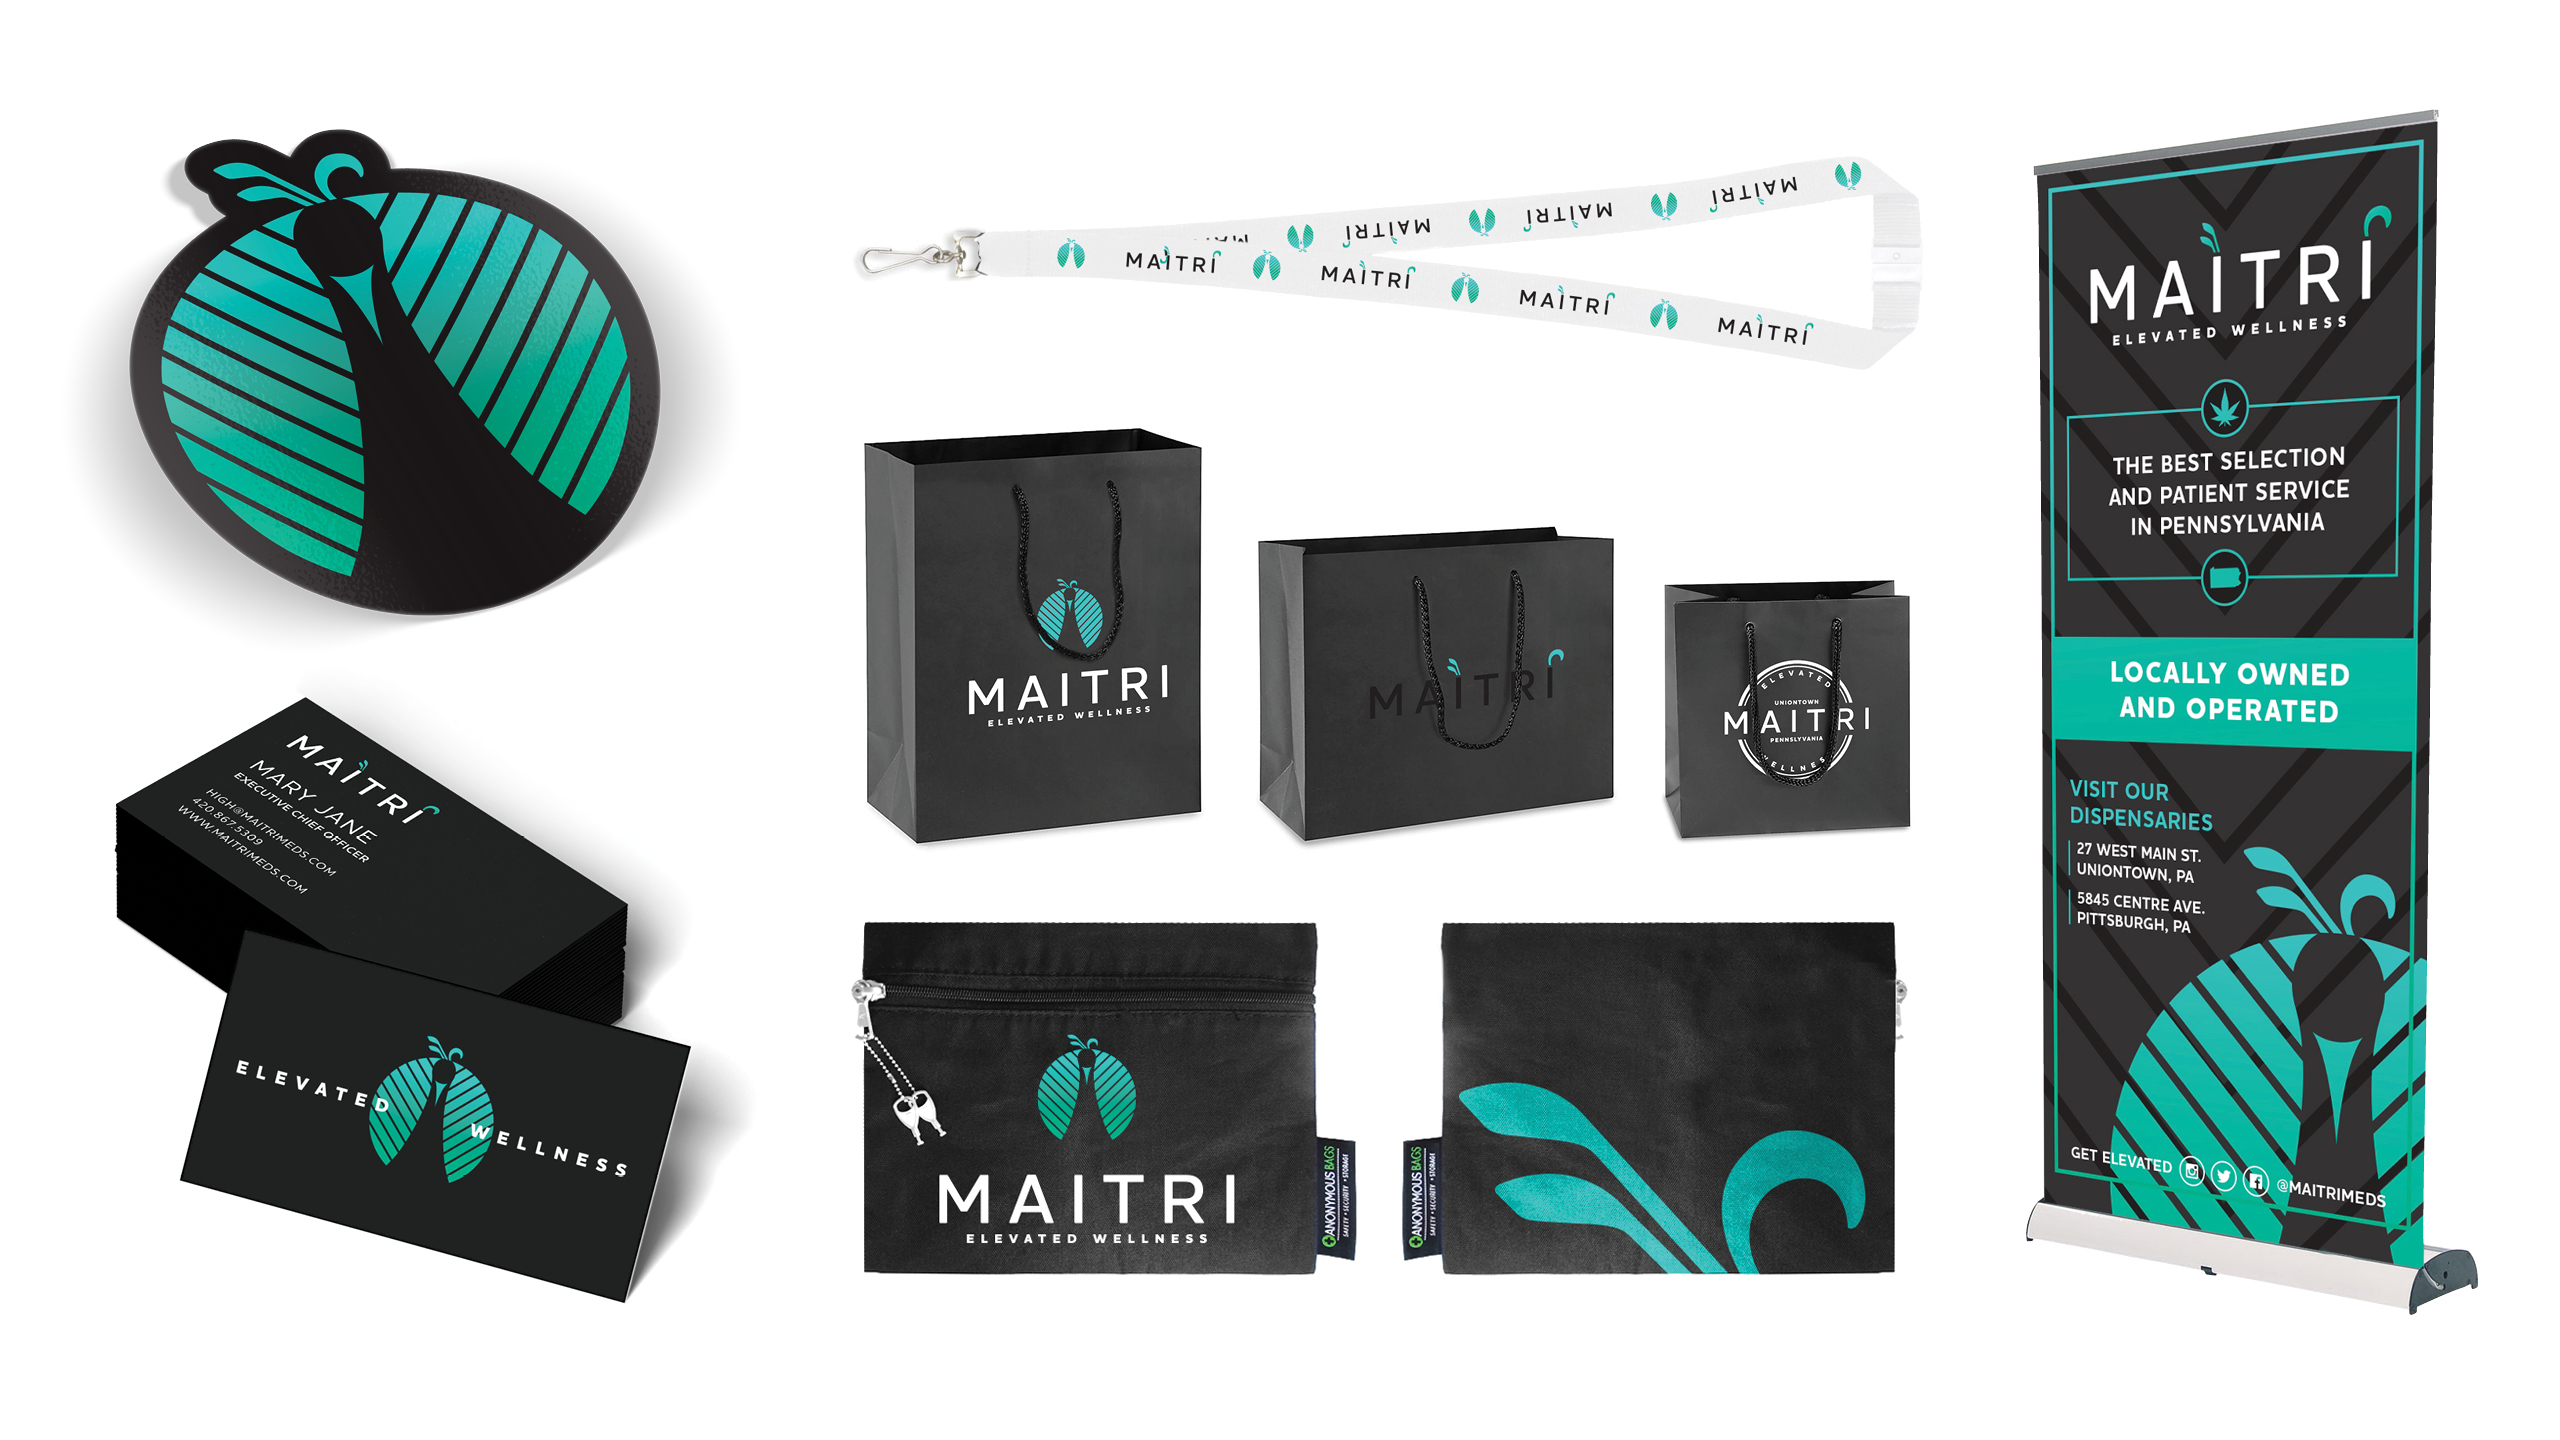 Maitri Medicinals Product Packaging & Label Design by High Road Design Studio